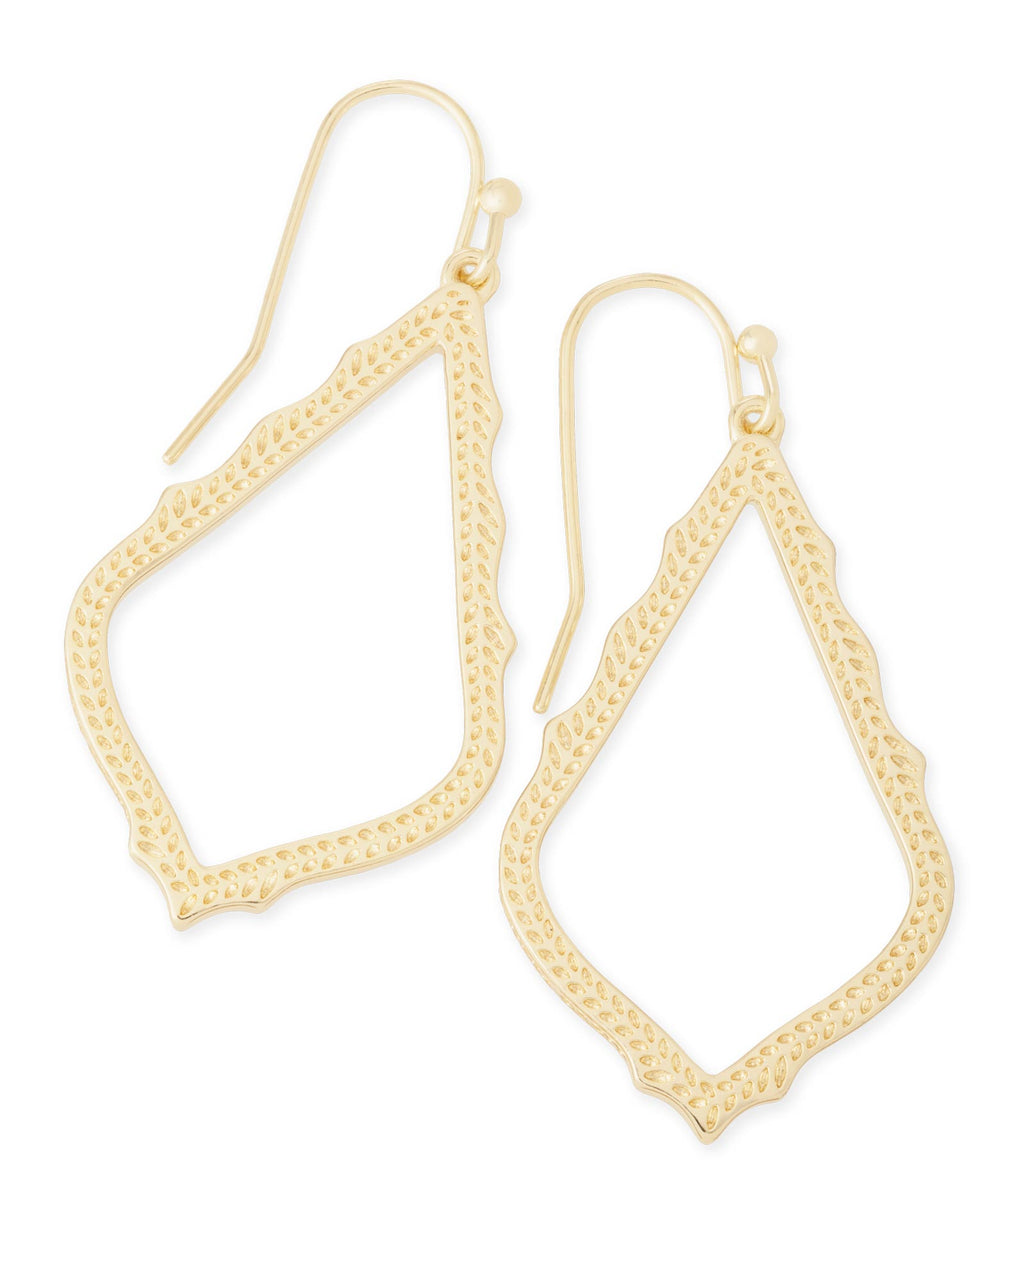 Kendra Scott Sophia Earrings - Gold